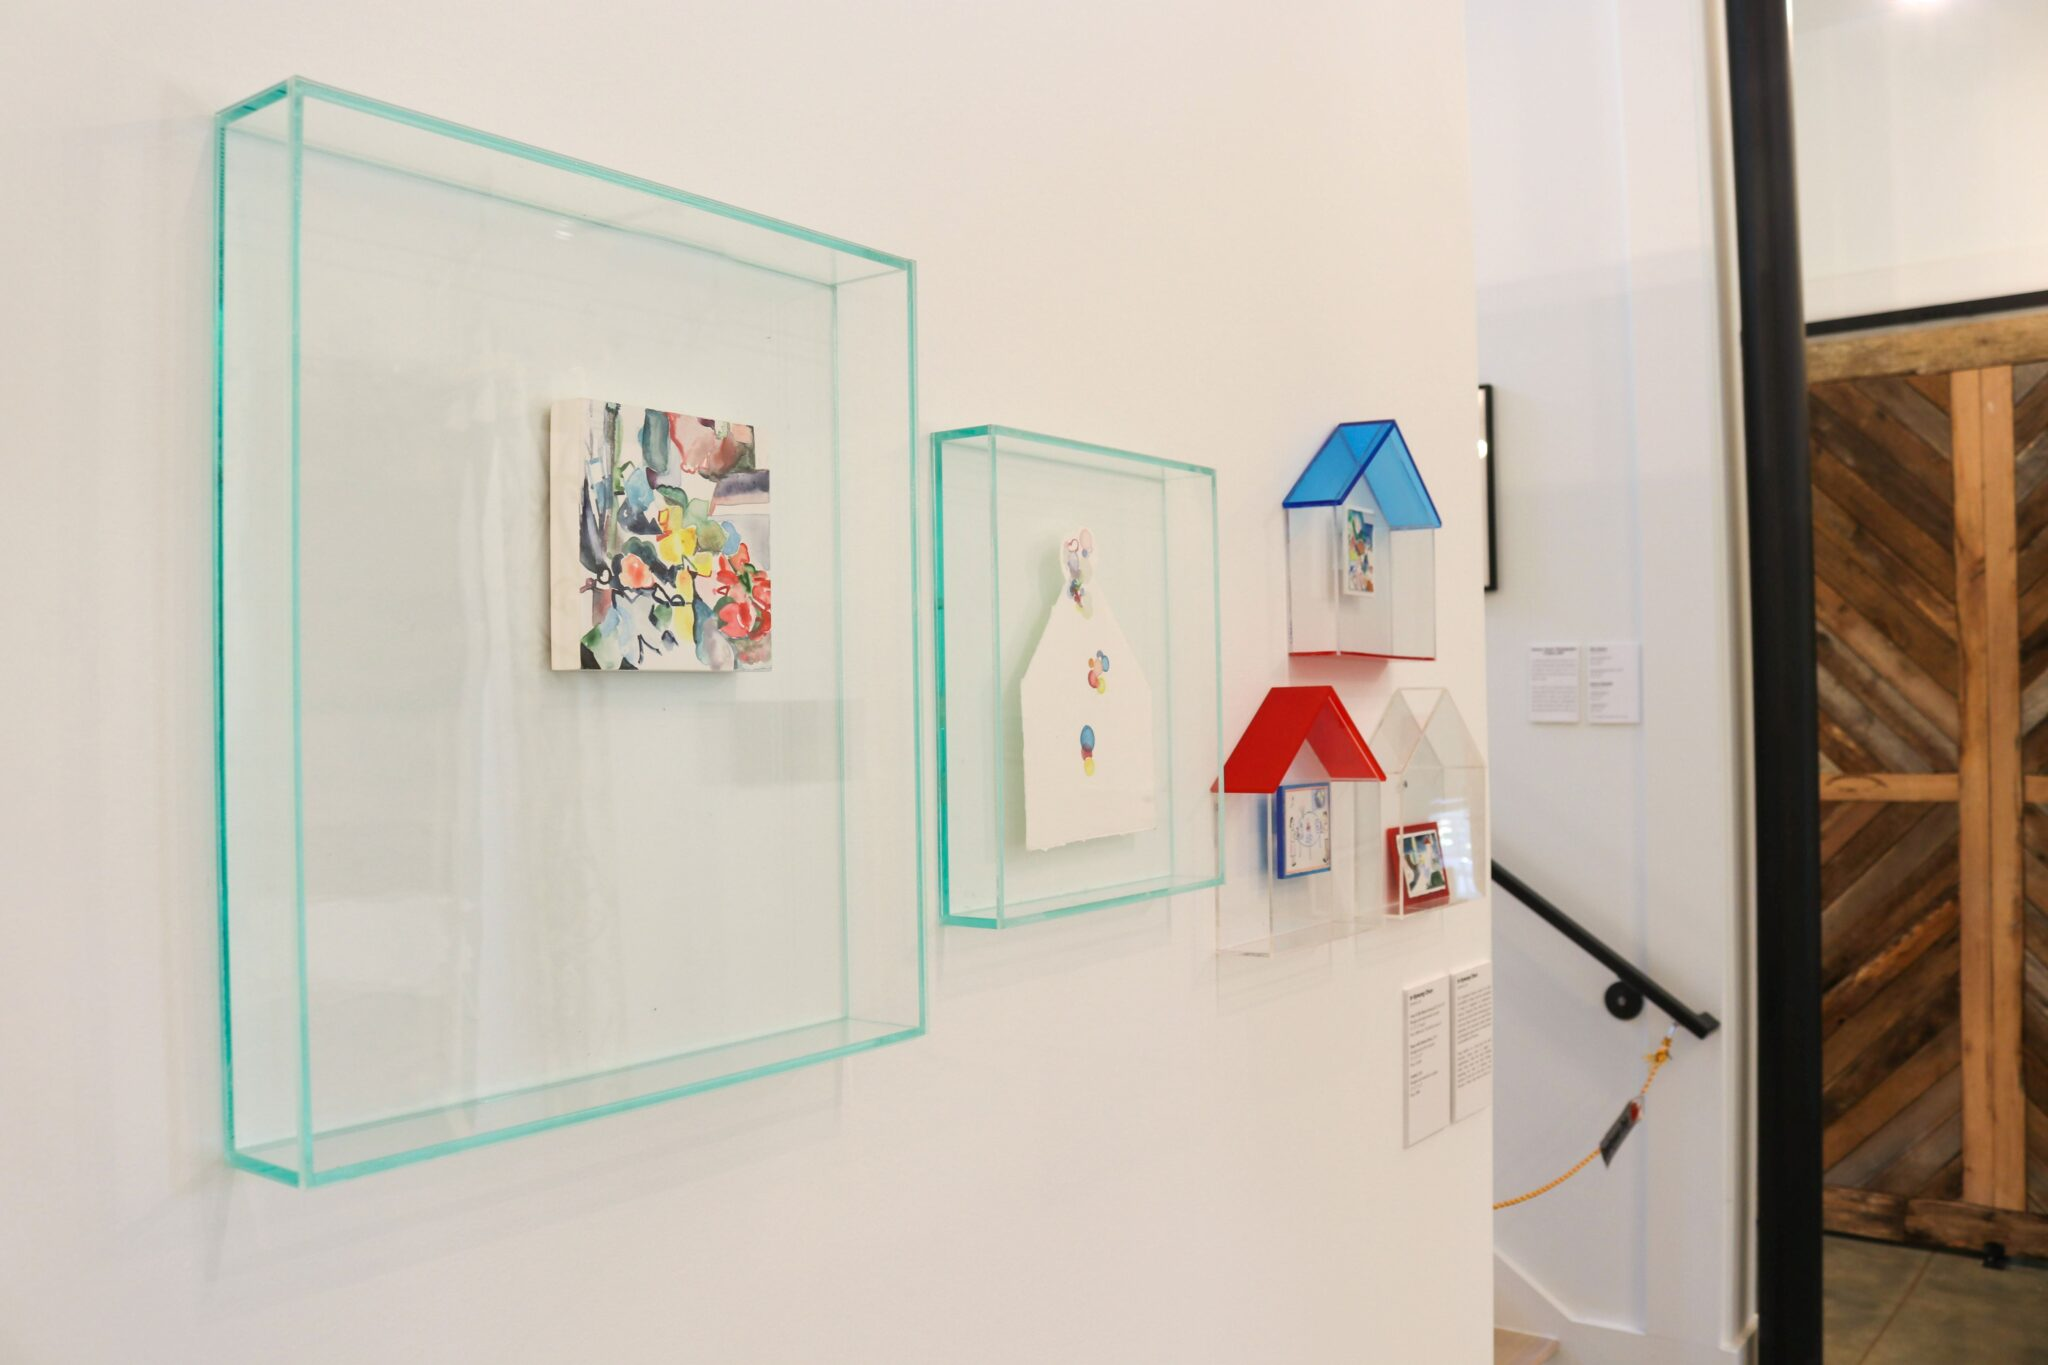 """Artist In Kyoung Chun is one of 20 artists with art on display at the [sic] Reeve Visual Arts Center through July 4. This piece is called """"Come To My House."""" Special - Nicole Lampl"""